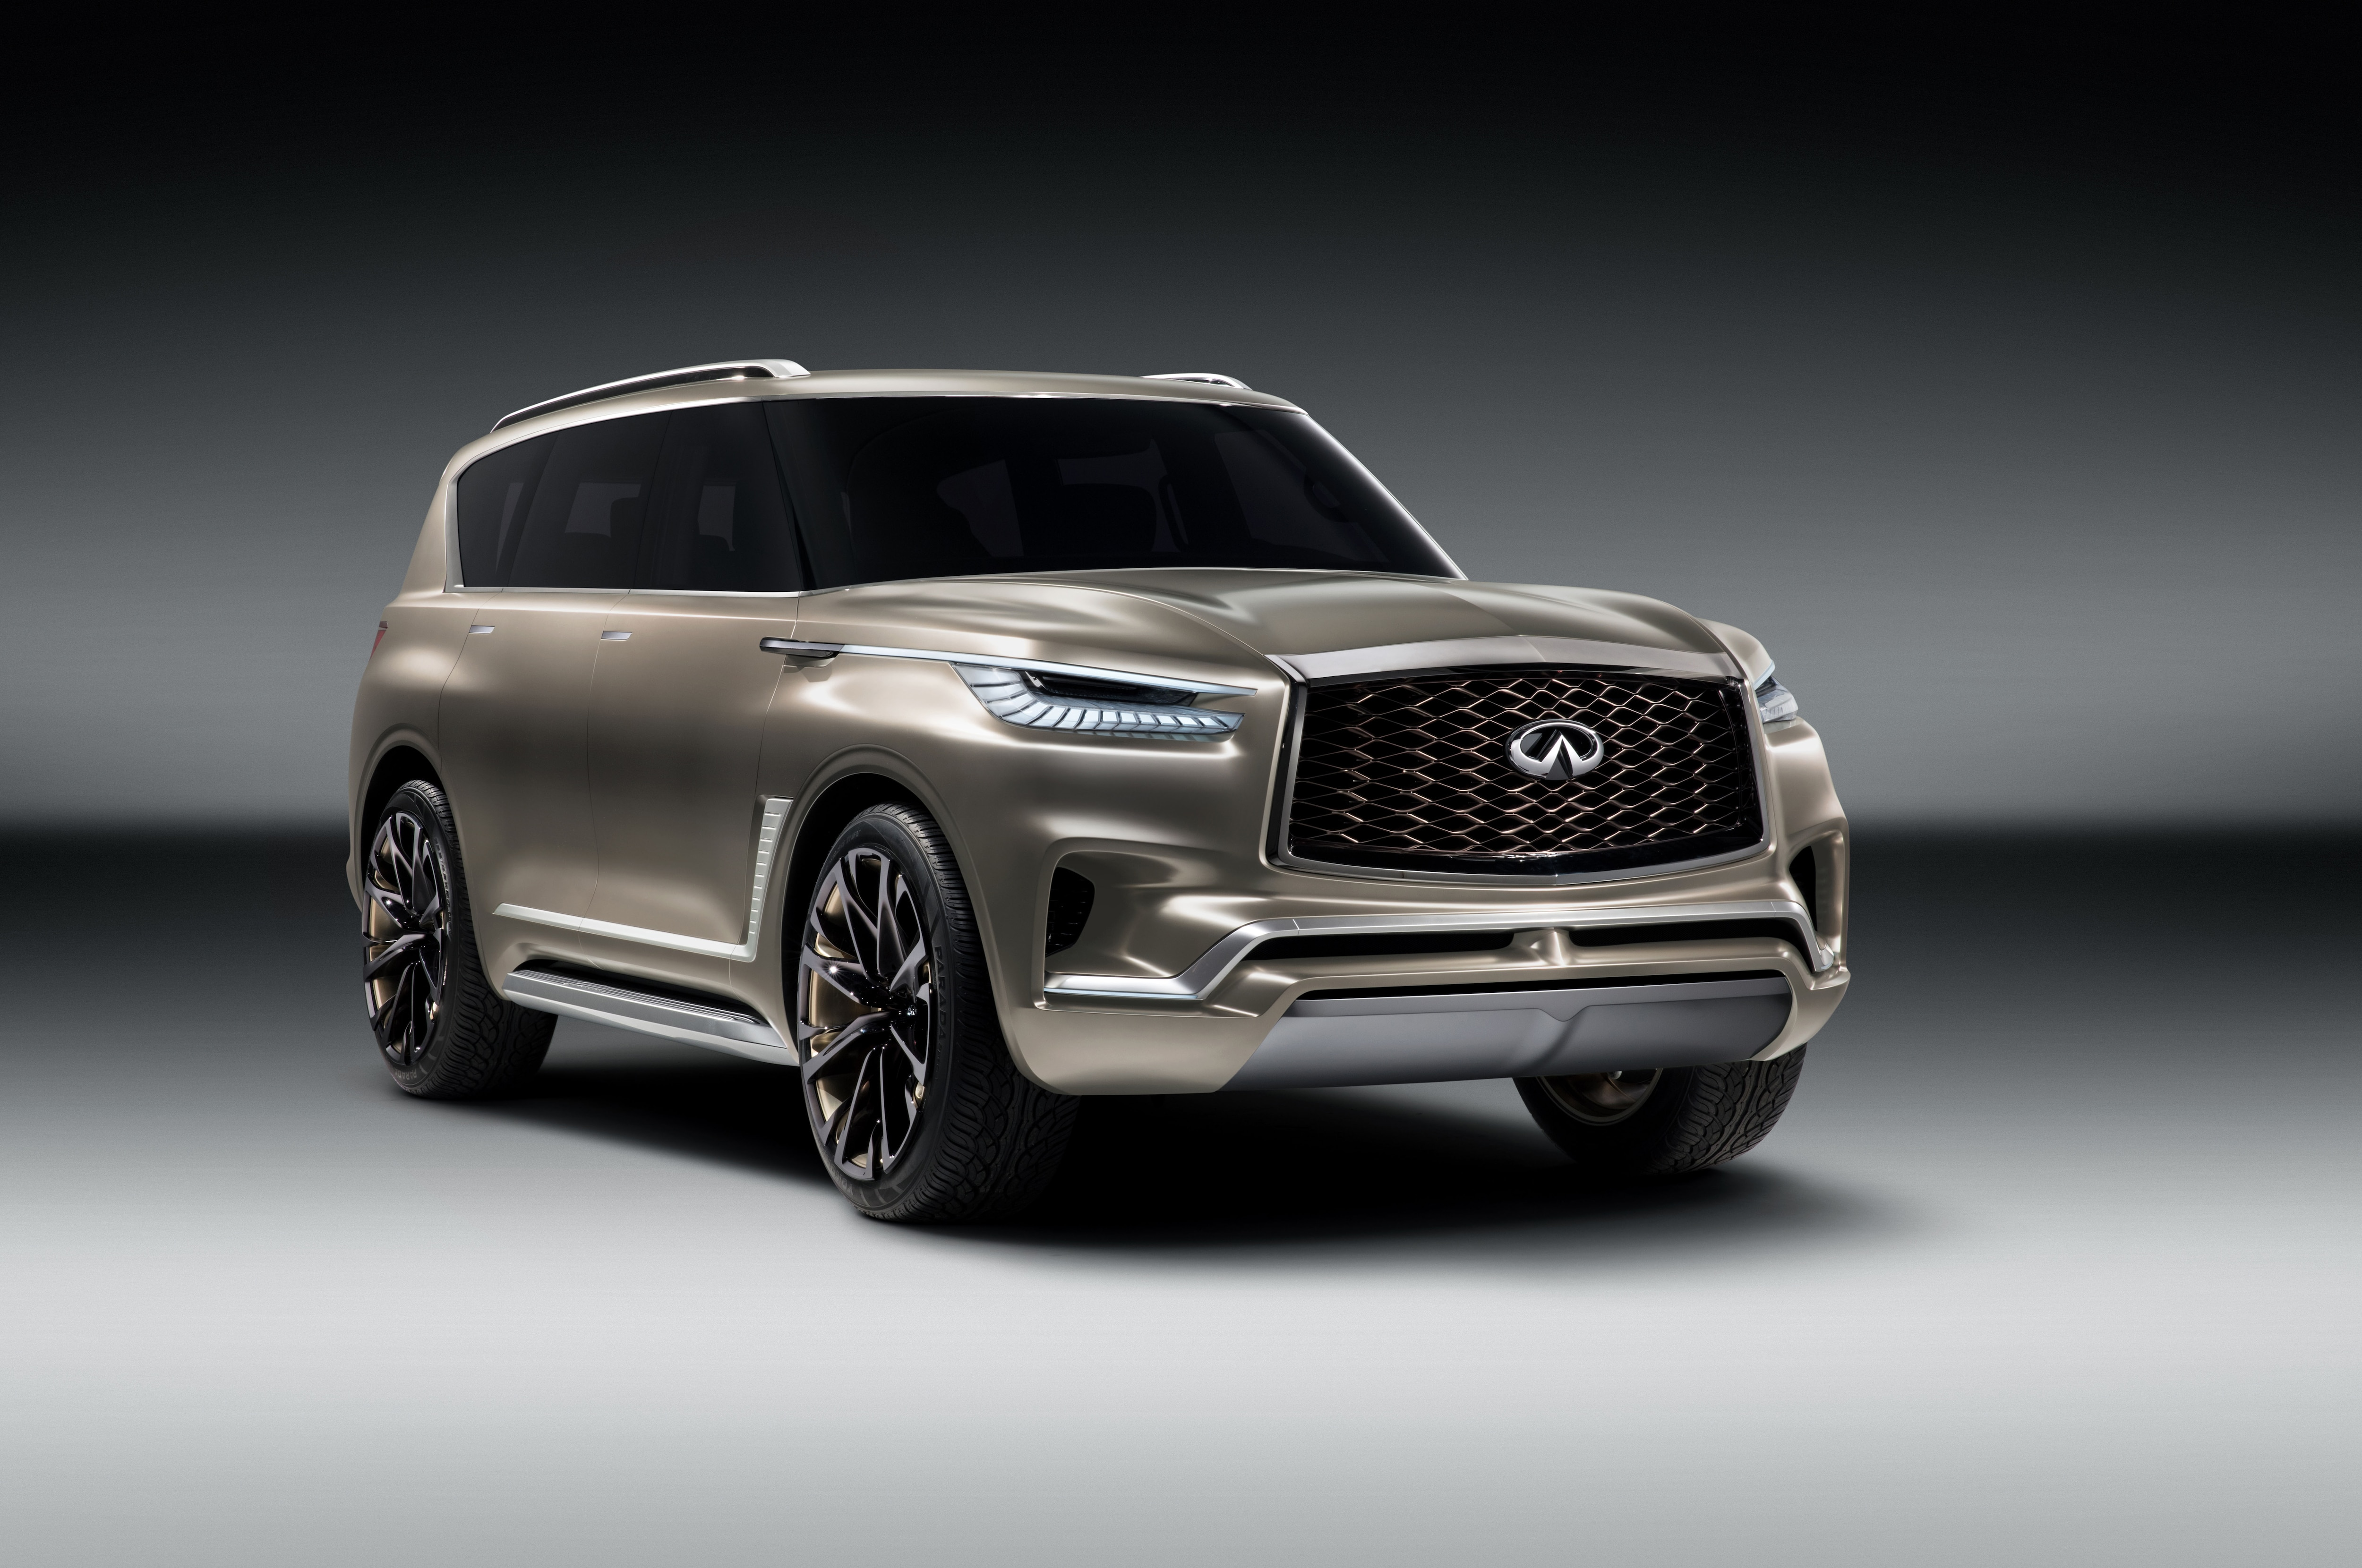 top desig qx reviews design for speed infiniti news and sale infinity cars